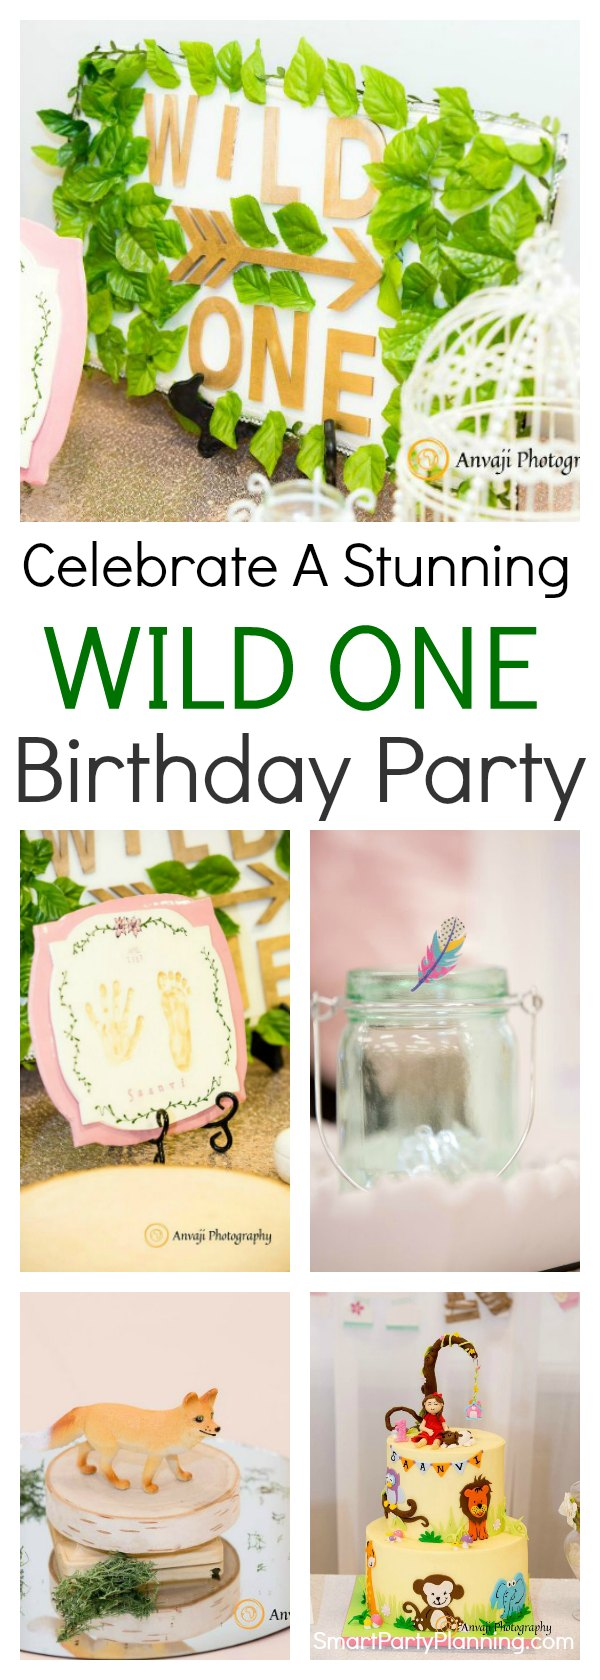 A wild one birthday party is a gorgeous theme that everyone will love.  It's full of life with a boho and tribal flair.  Decorations can be easily put together by keeping an earthy tone and choosing some of our favorite animals.  Boys and girls alike are going to love this theme and it's perfect for a first birthday.